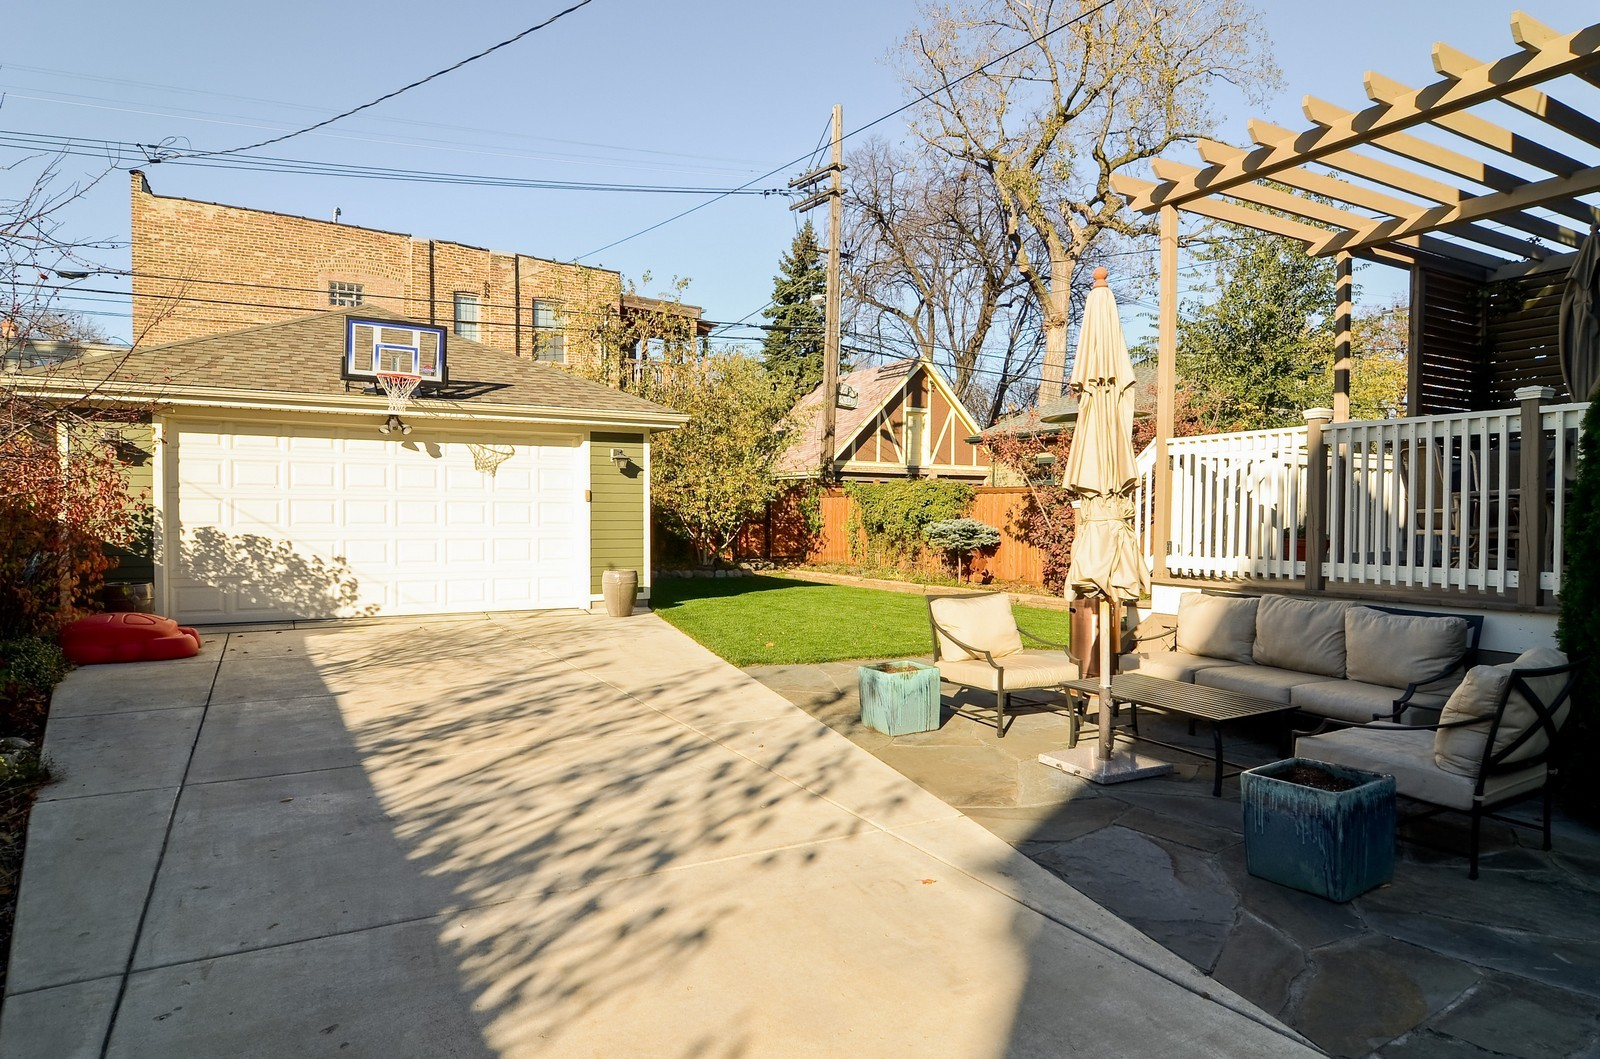 Real Estate Photography - 4332 N Keeler, Chicago, IL, 60641 - Garage